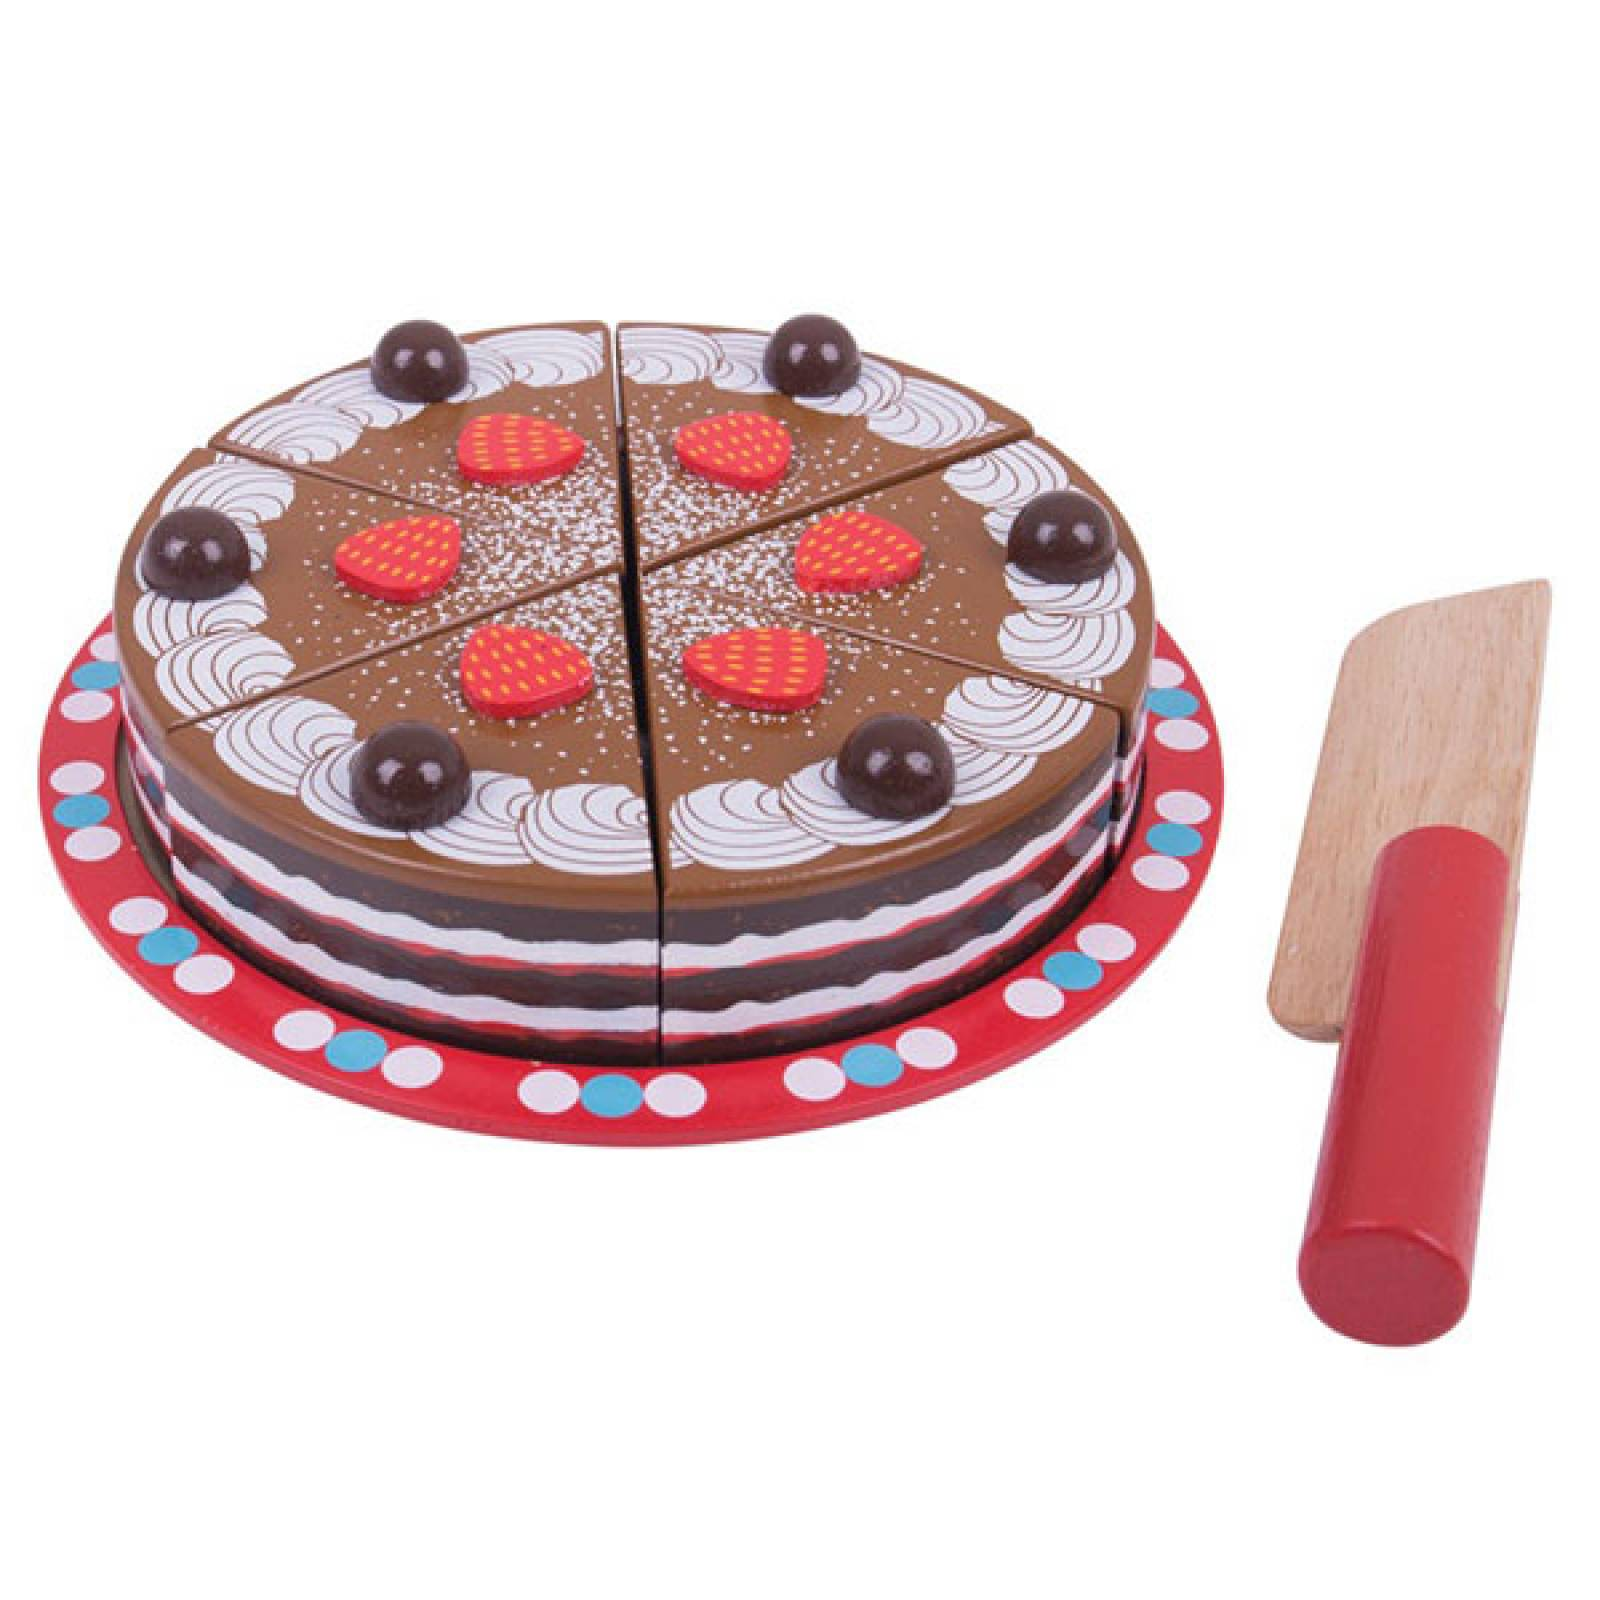 Chocolate Party Cake Wooden Play Food Set 3+ thumbnails